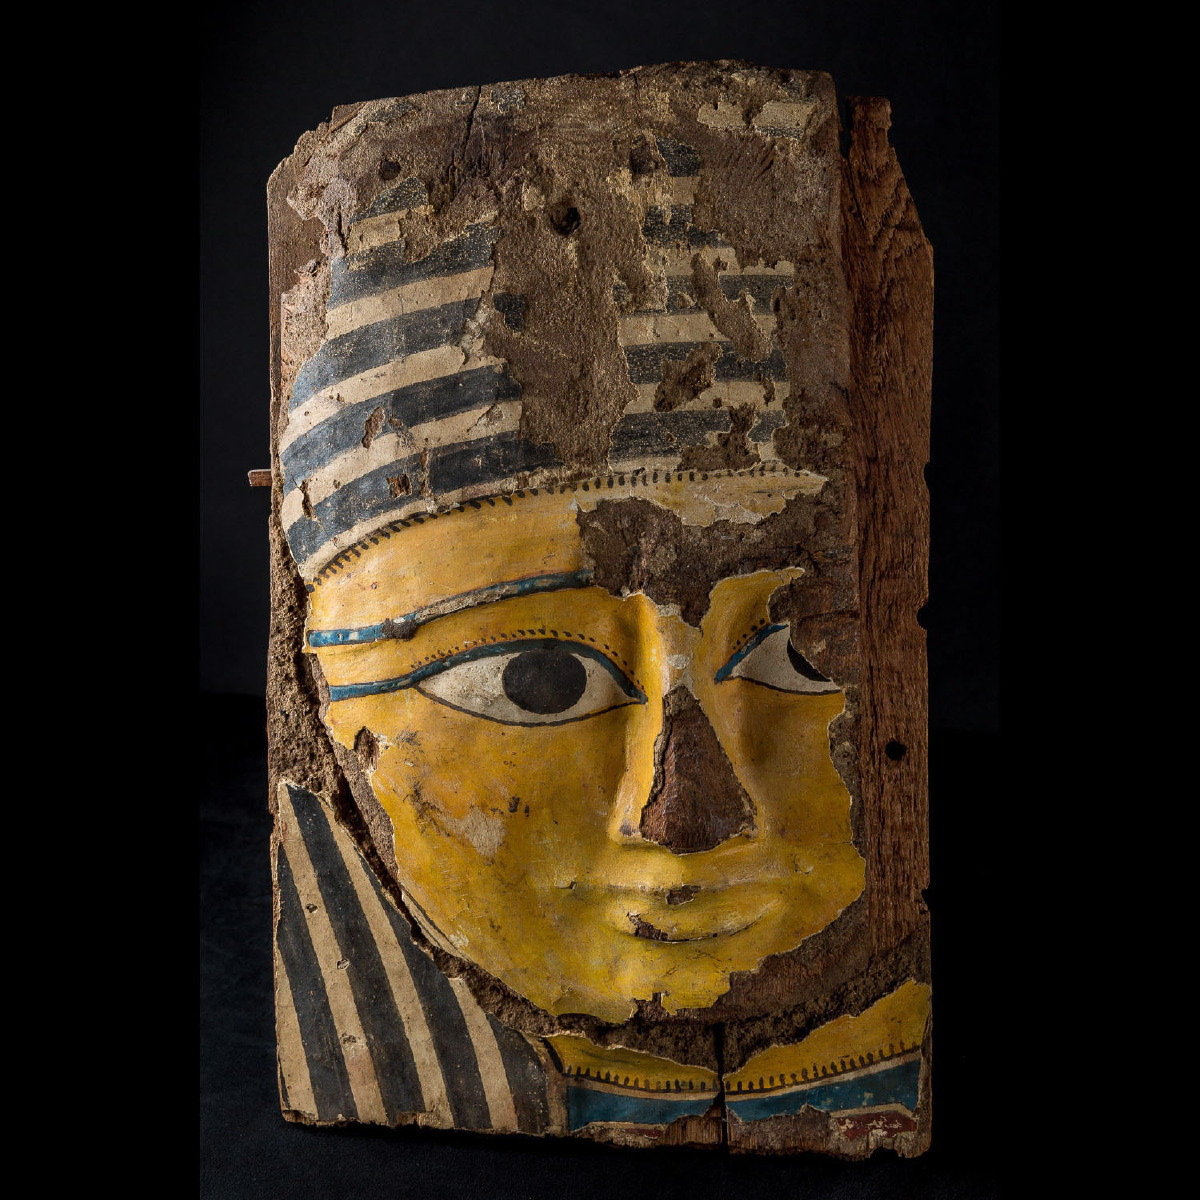 Photo of sarcophagus-mask-in-wood-26-th-dynasty-galerie-golconda